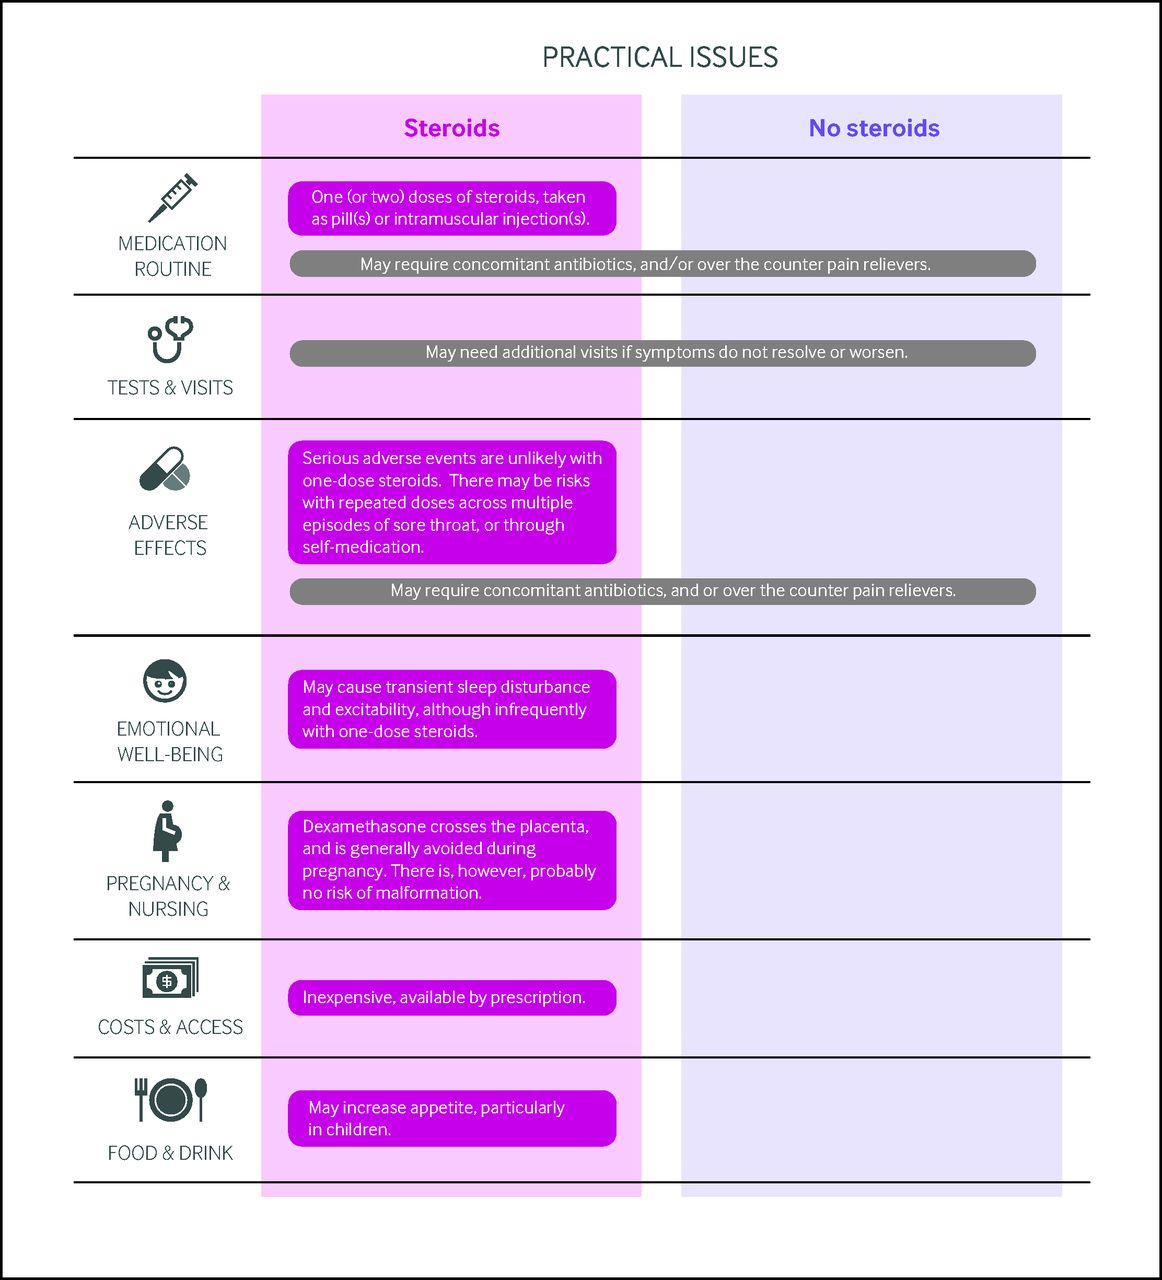 Corticosteroids for sore throat: a clinical practice guideline | The BMJ